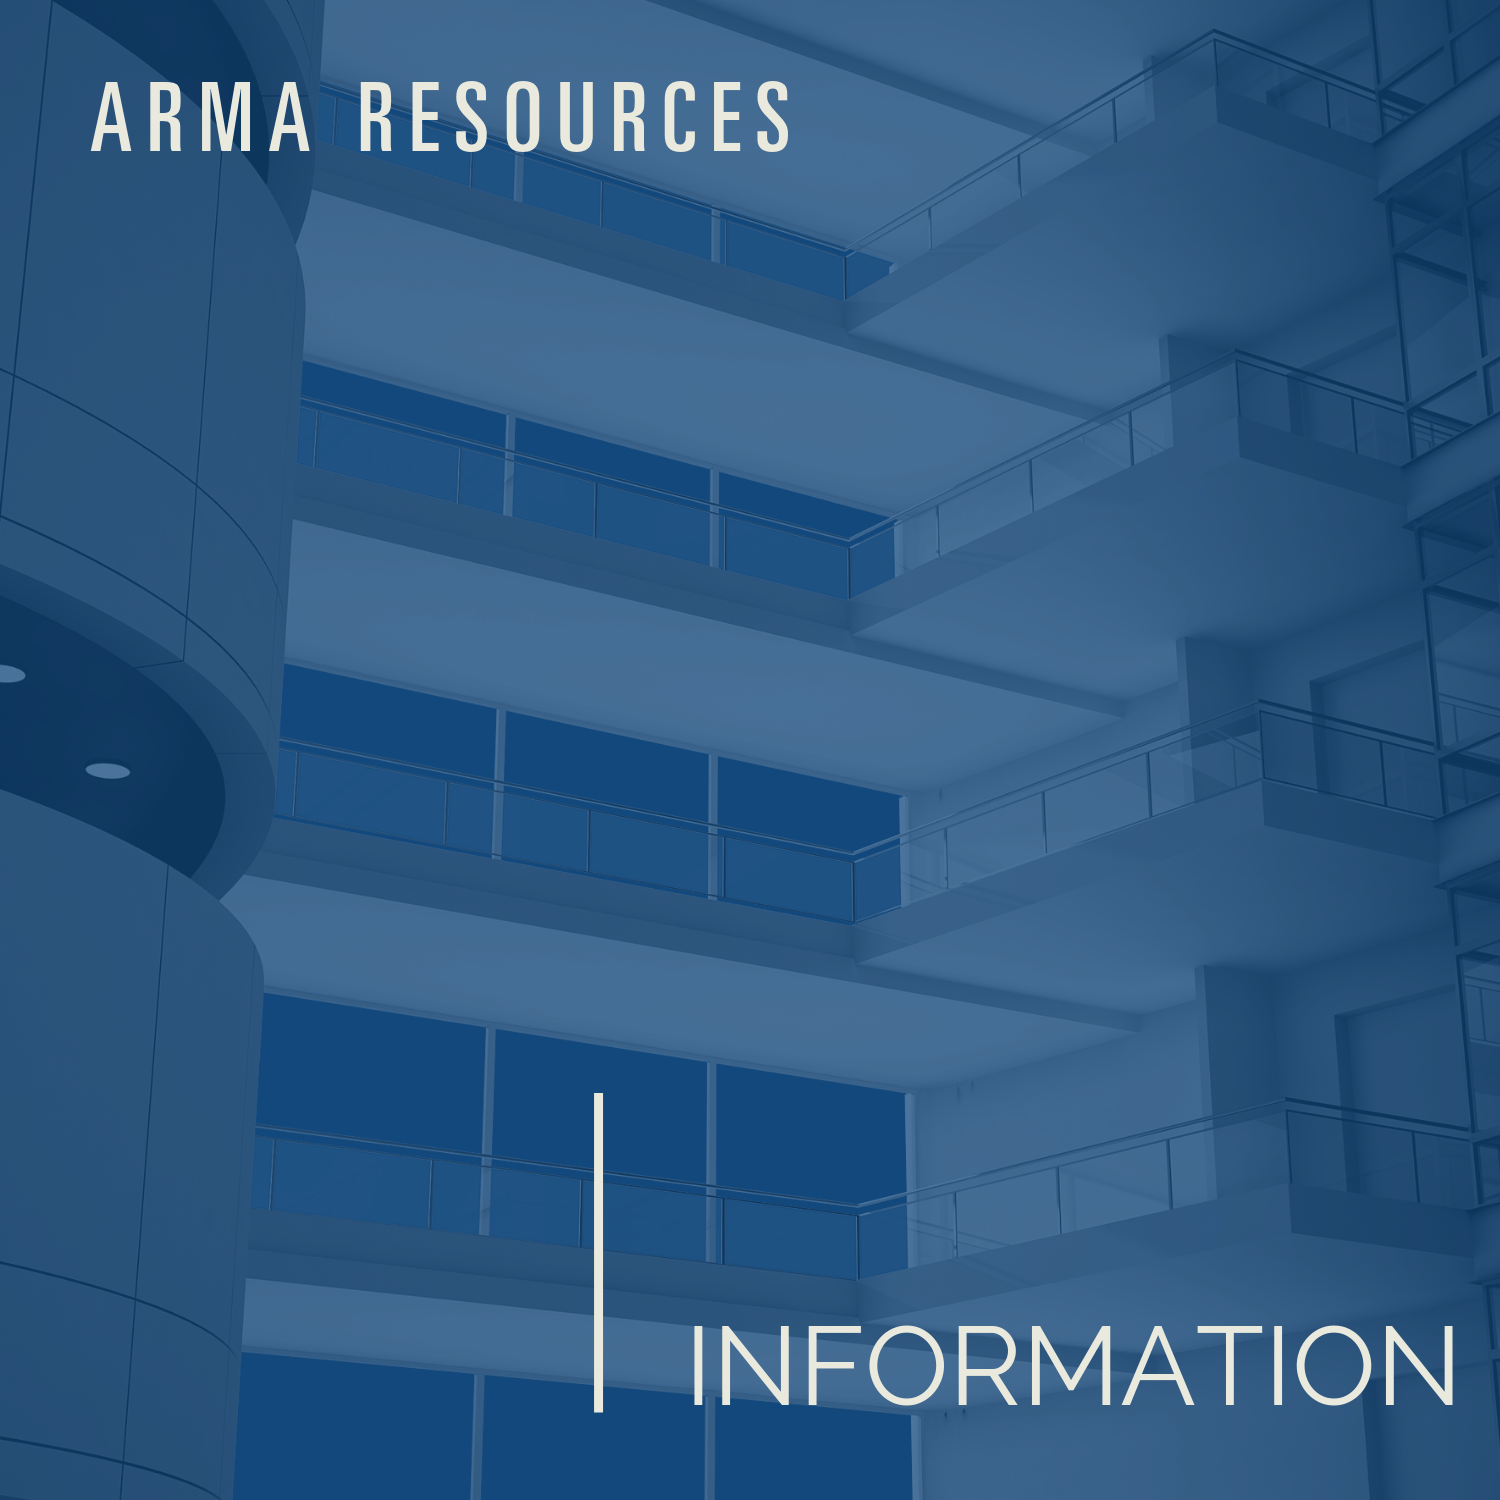 Information-Related Resources